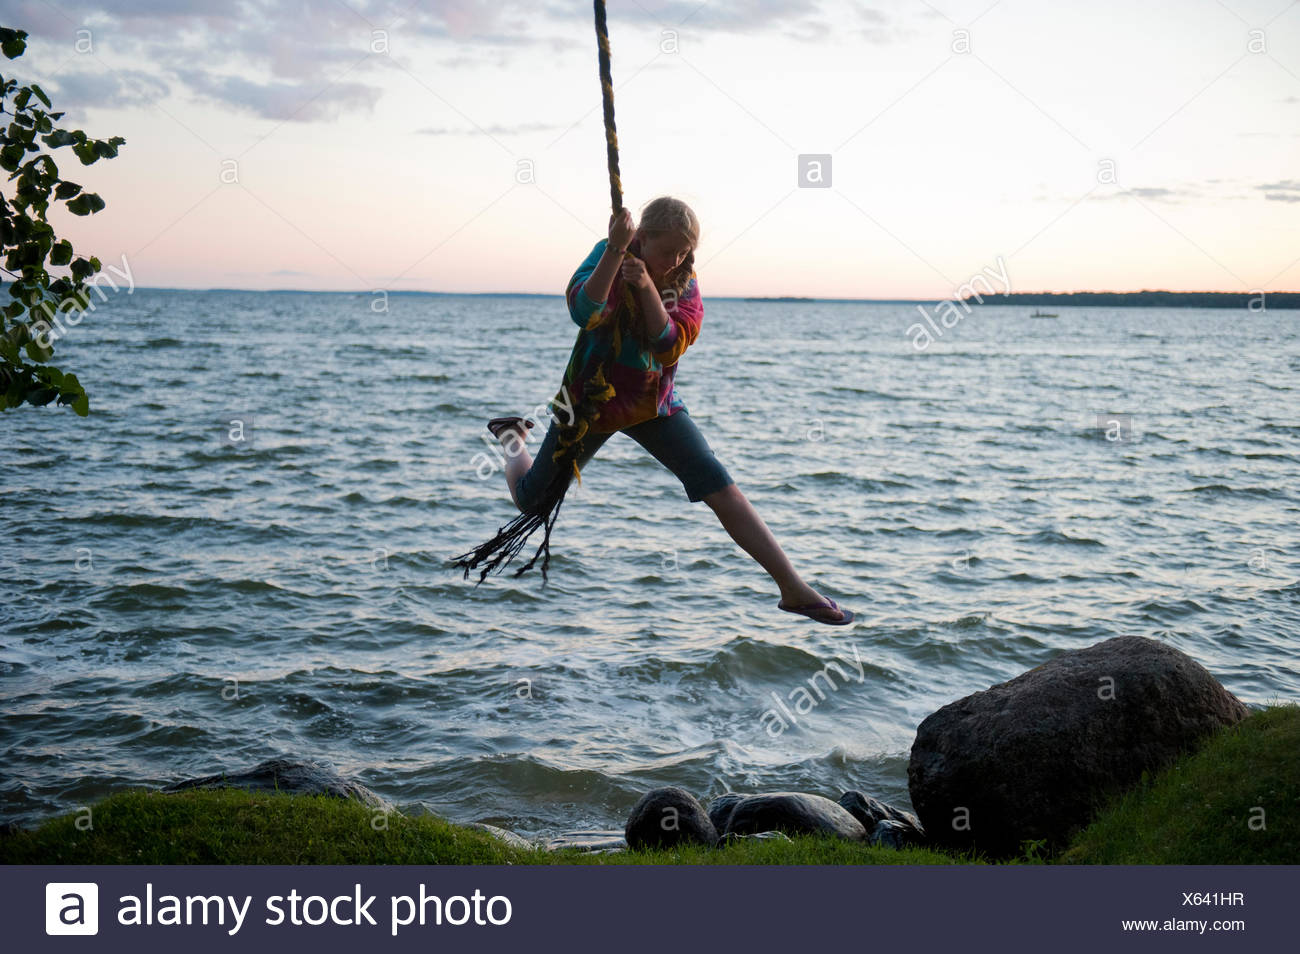 A teenage girl uses a rope to soar out over the water. - Stock Image